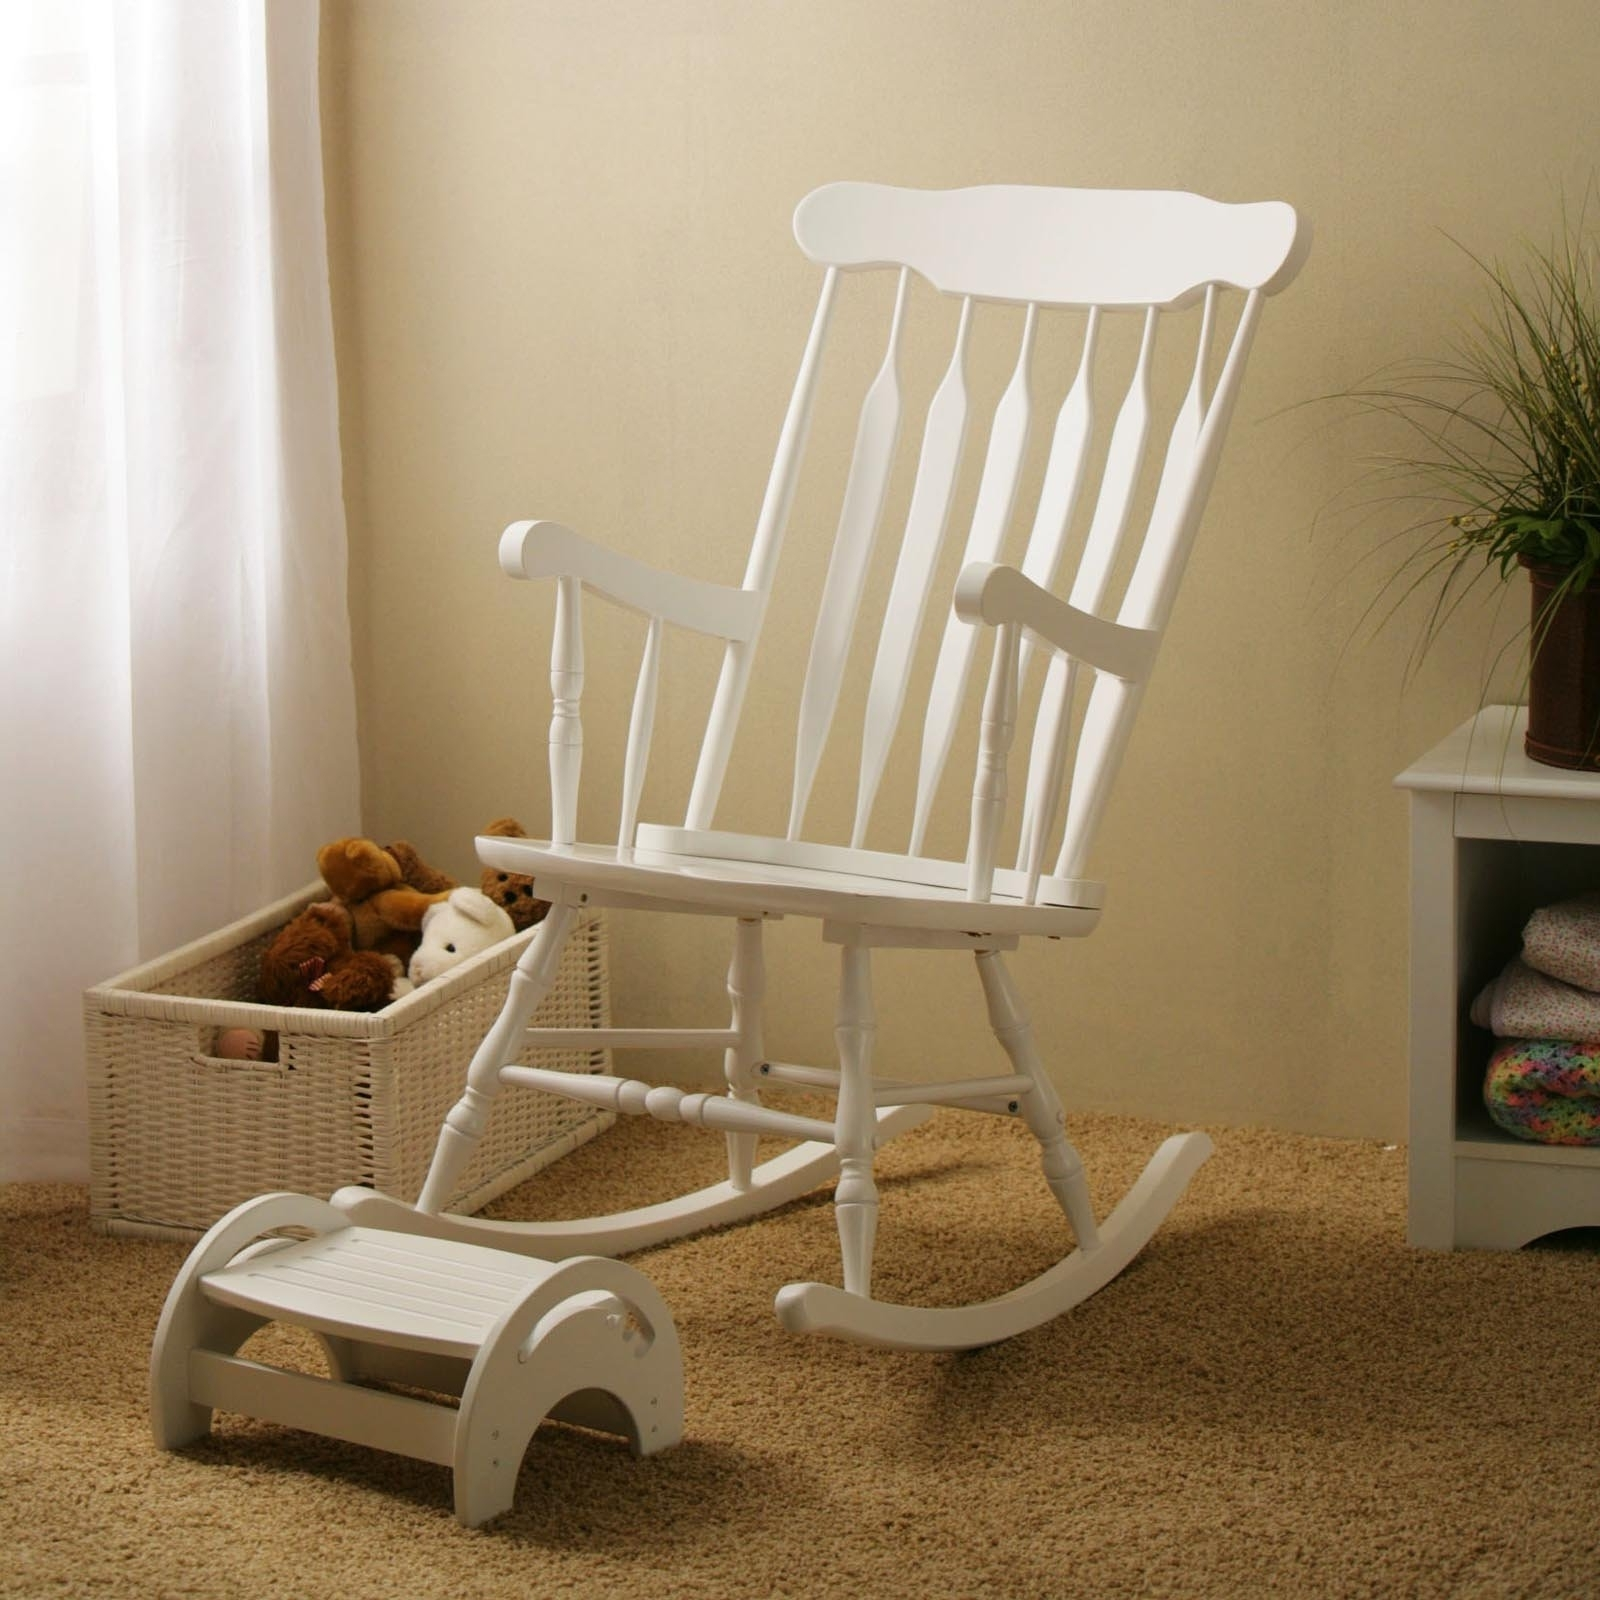 Nursery Rocking Chair Costco – Nursery Rocking Chair To Help Comfort With Best And Newest Rocking Chairs For Adults (Gallery 12 of 20)